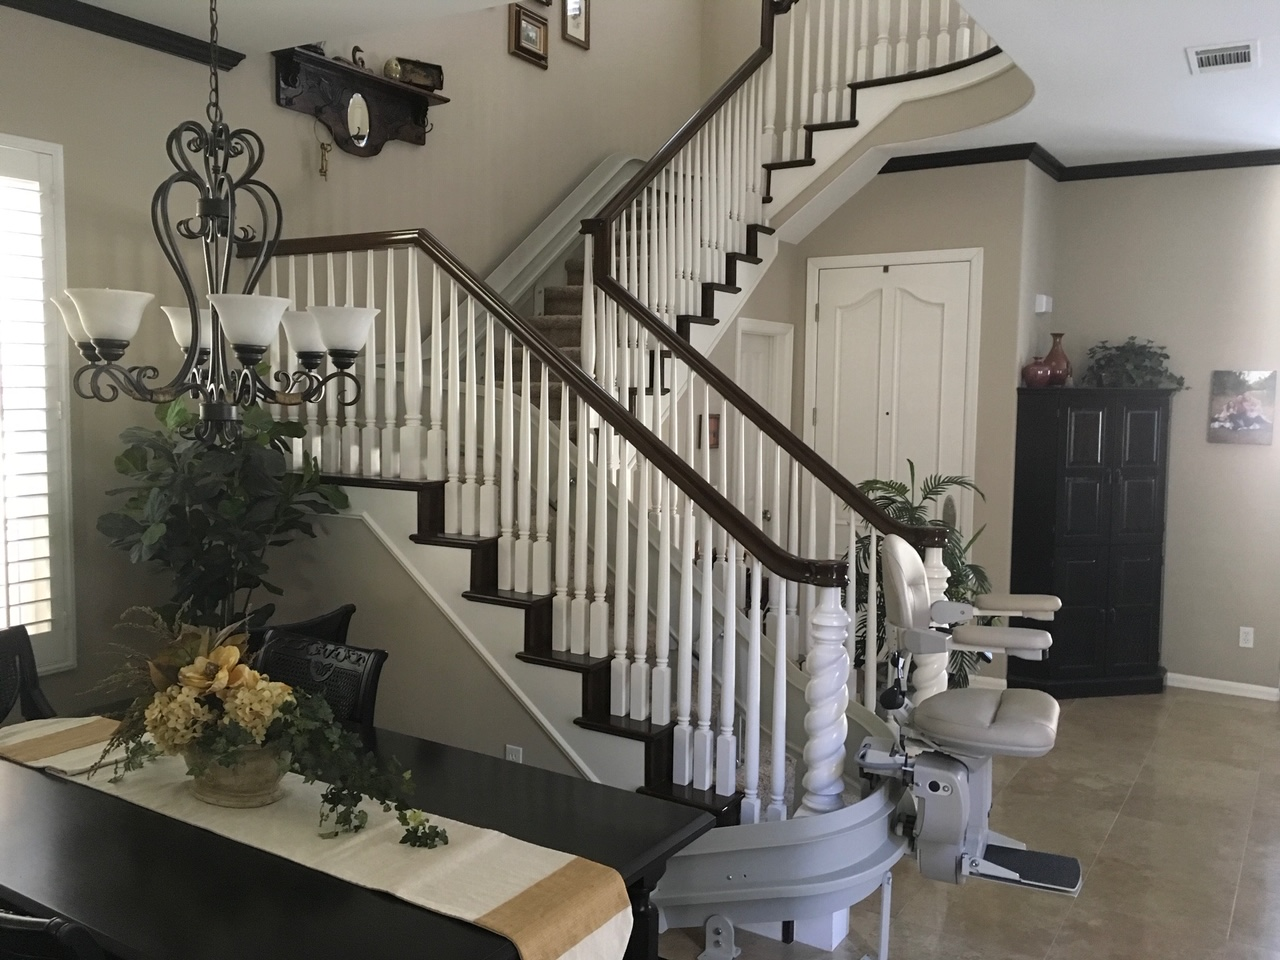 Stair Lifts - Why You Should Avoid Buying a Stair Lift Online